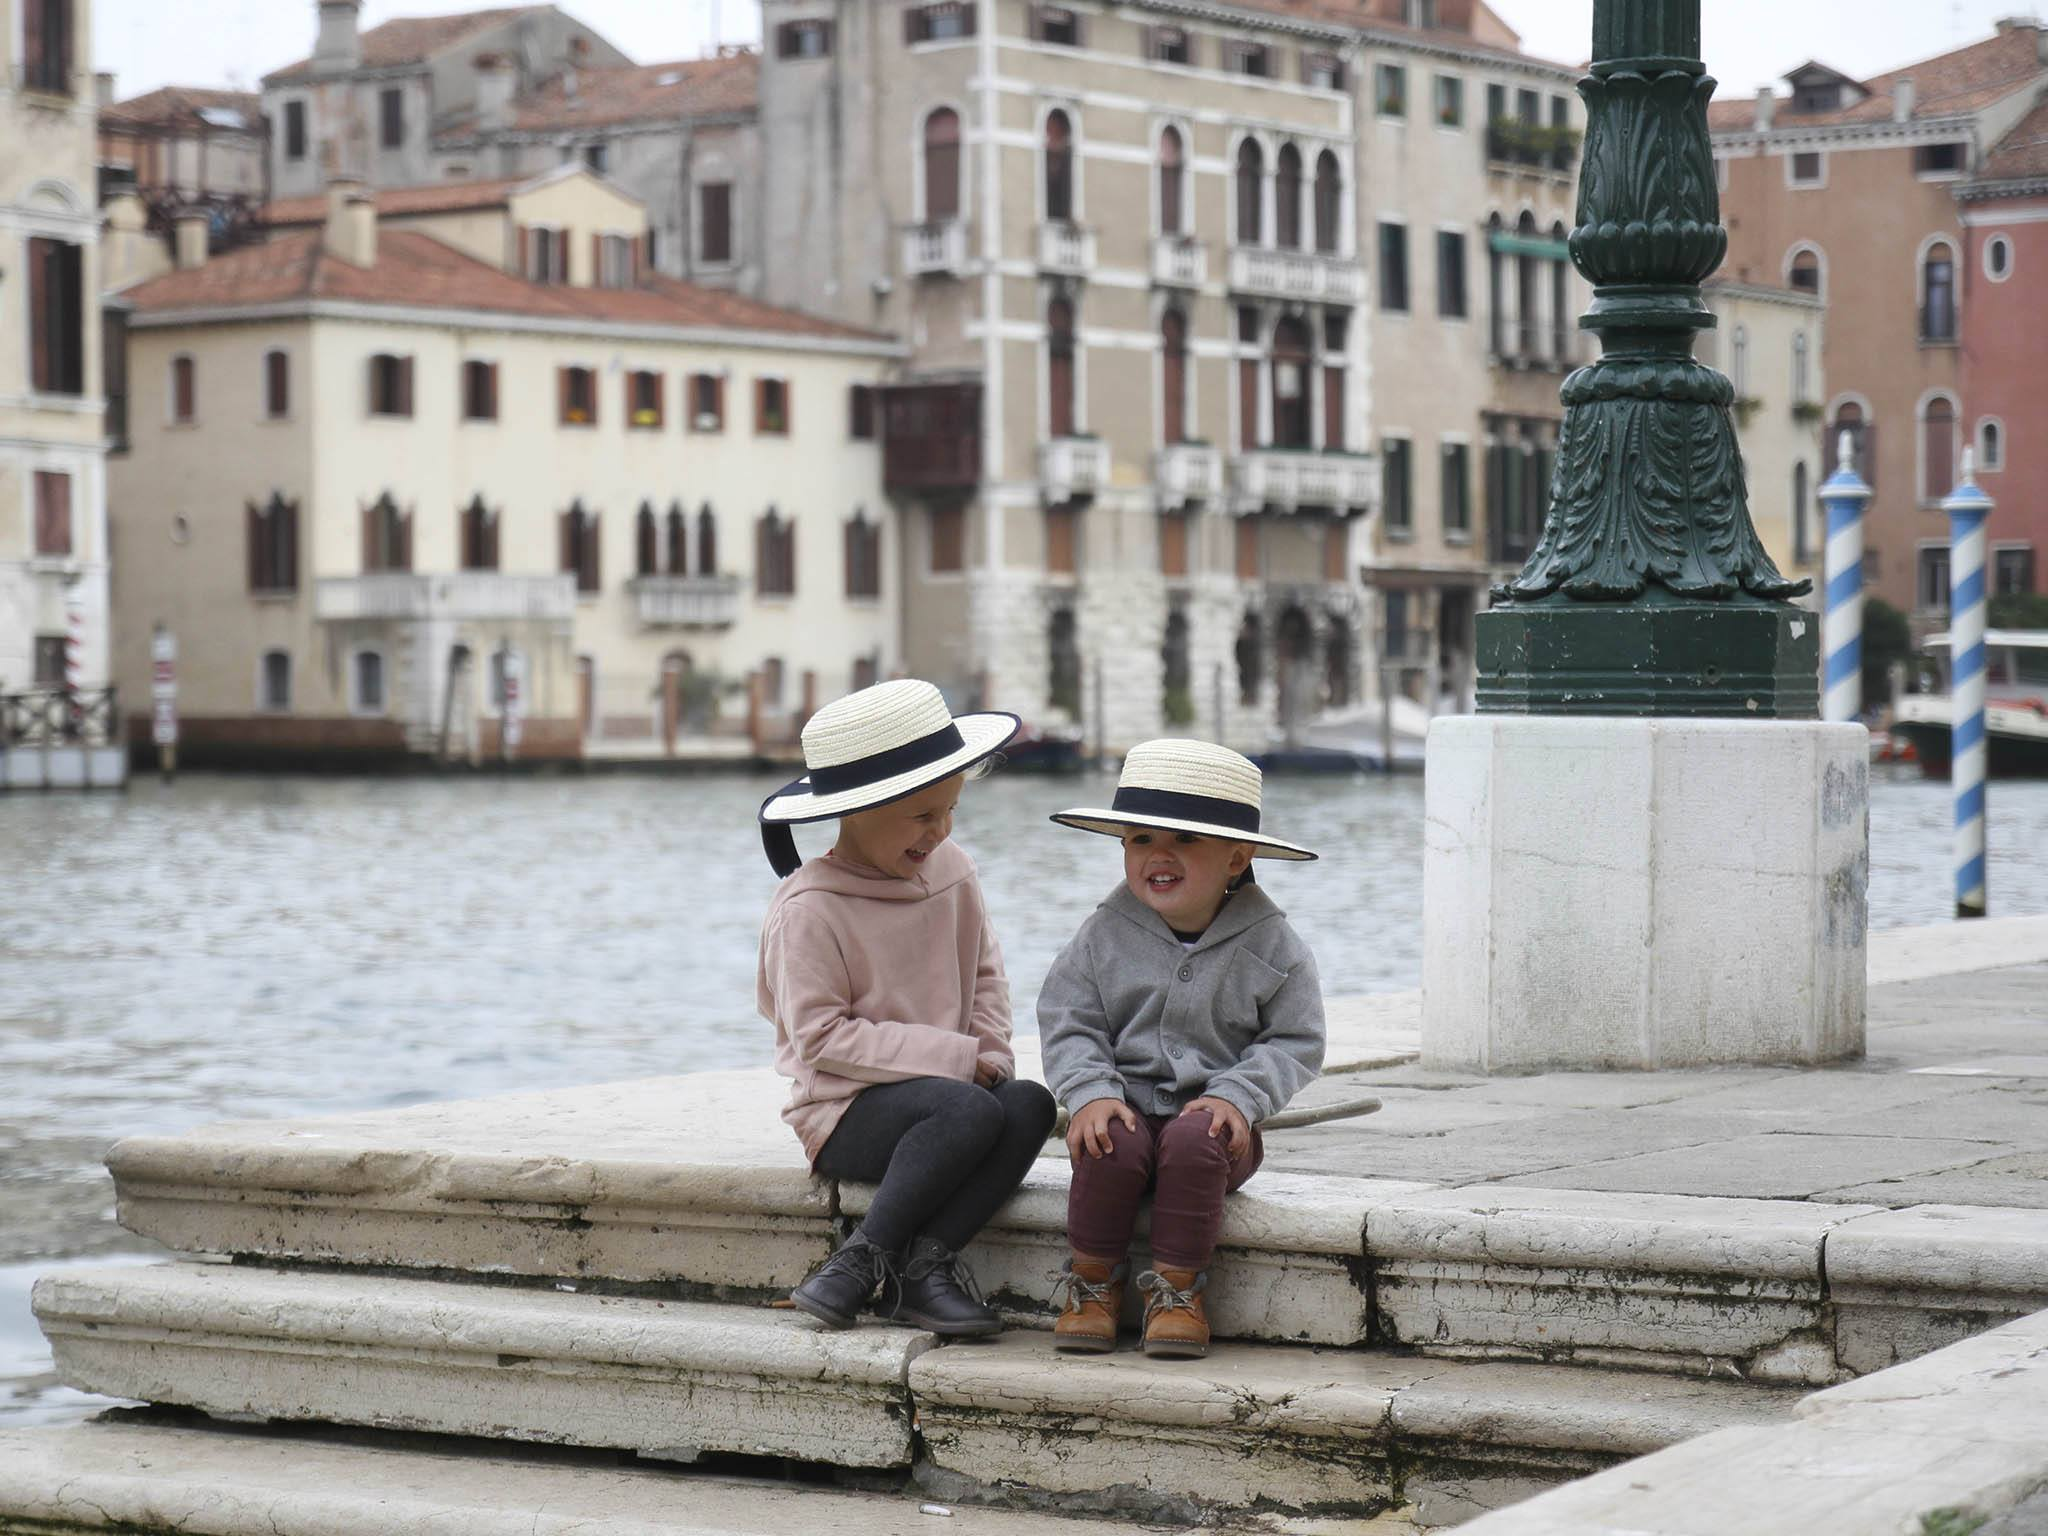 two girl and boy sitting on stairs near body of water